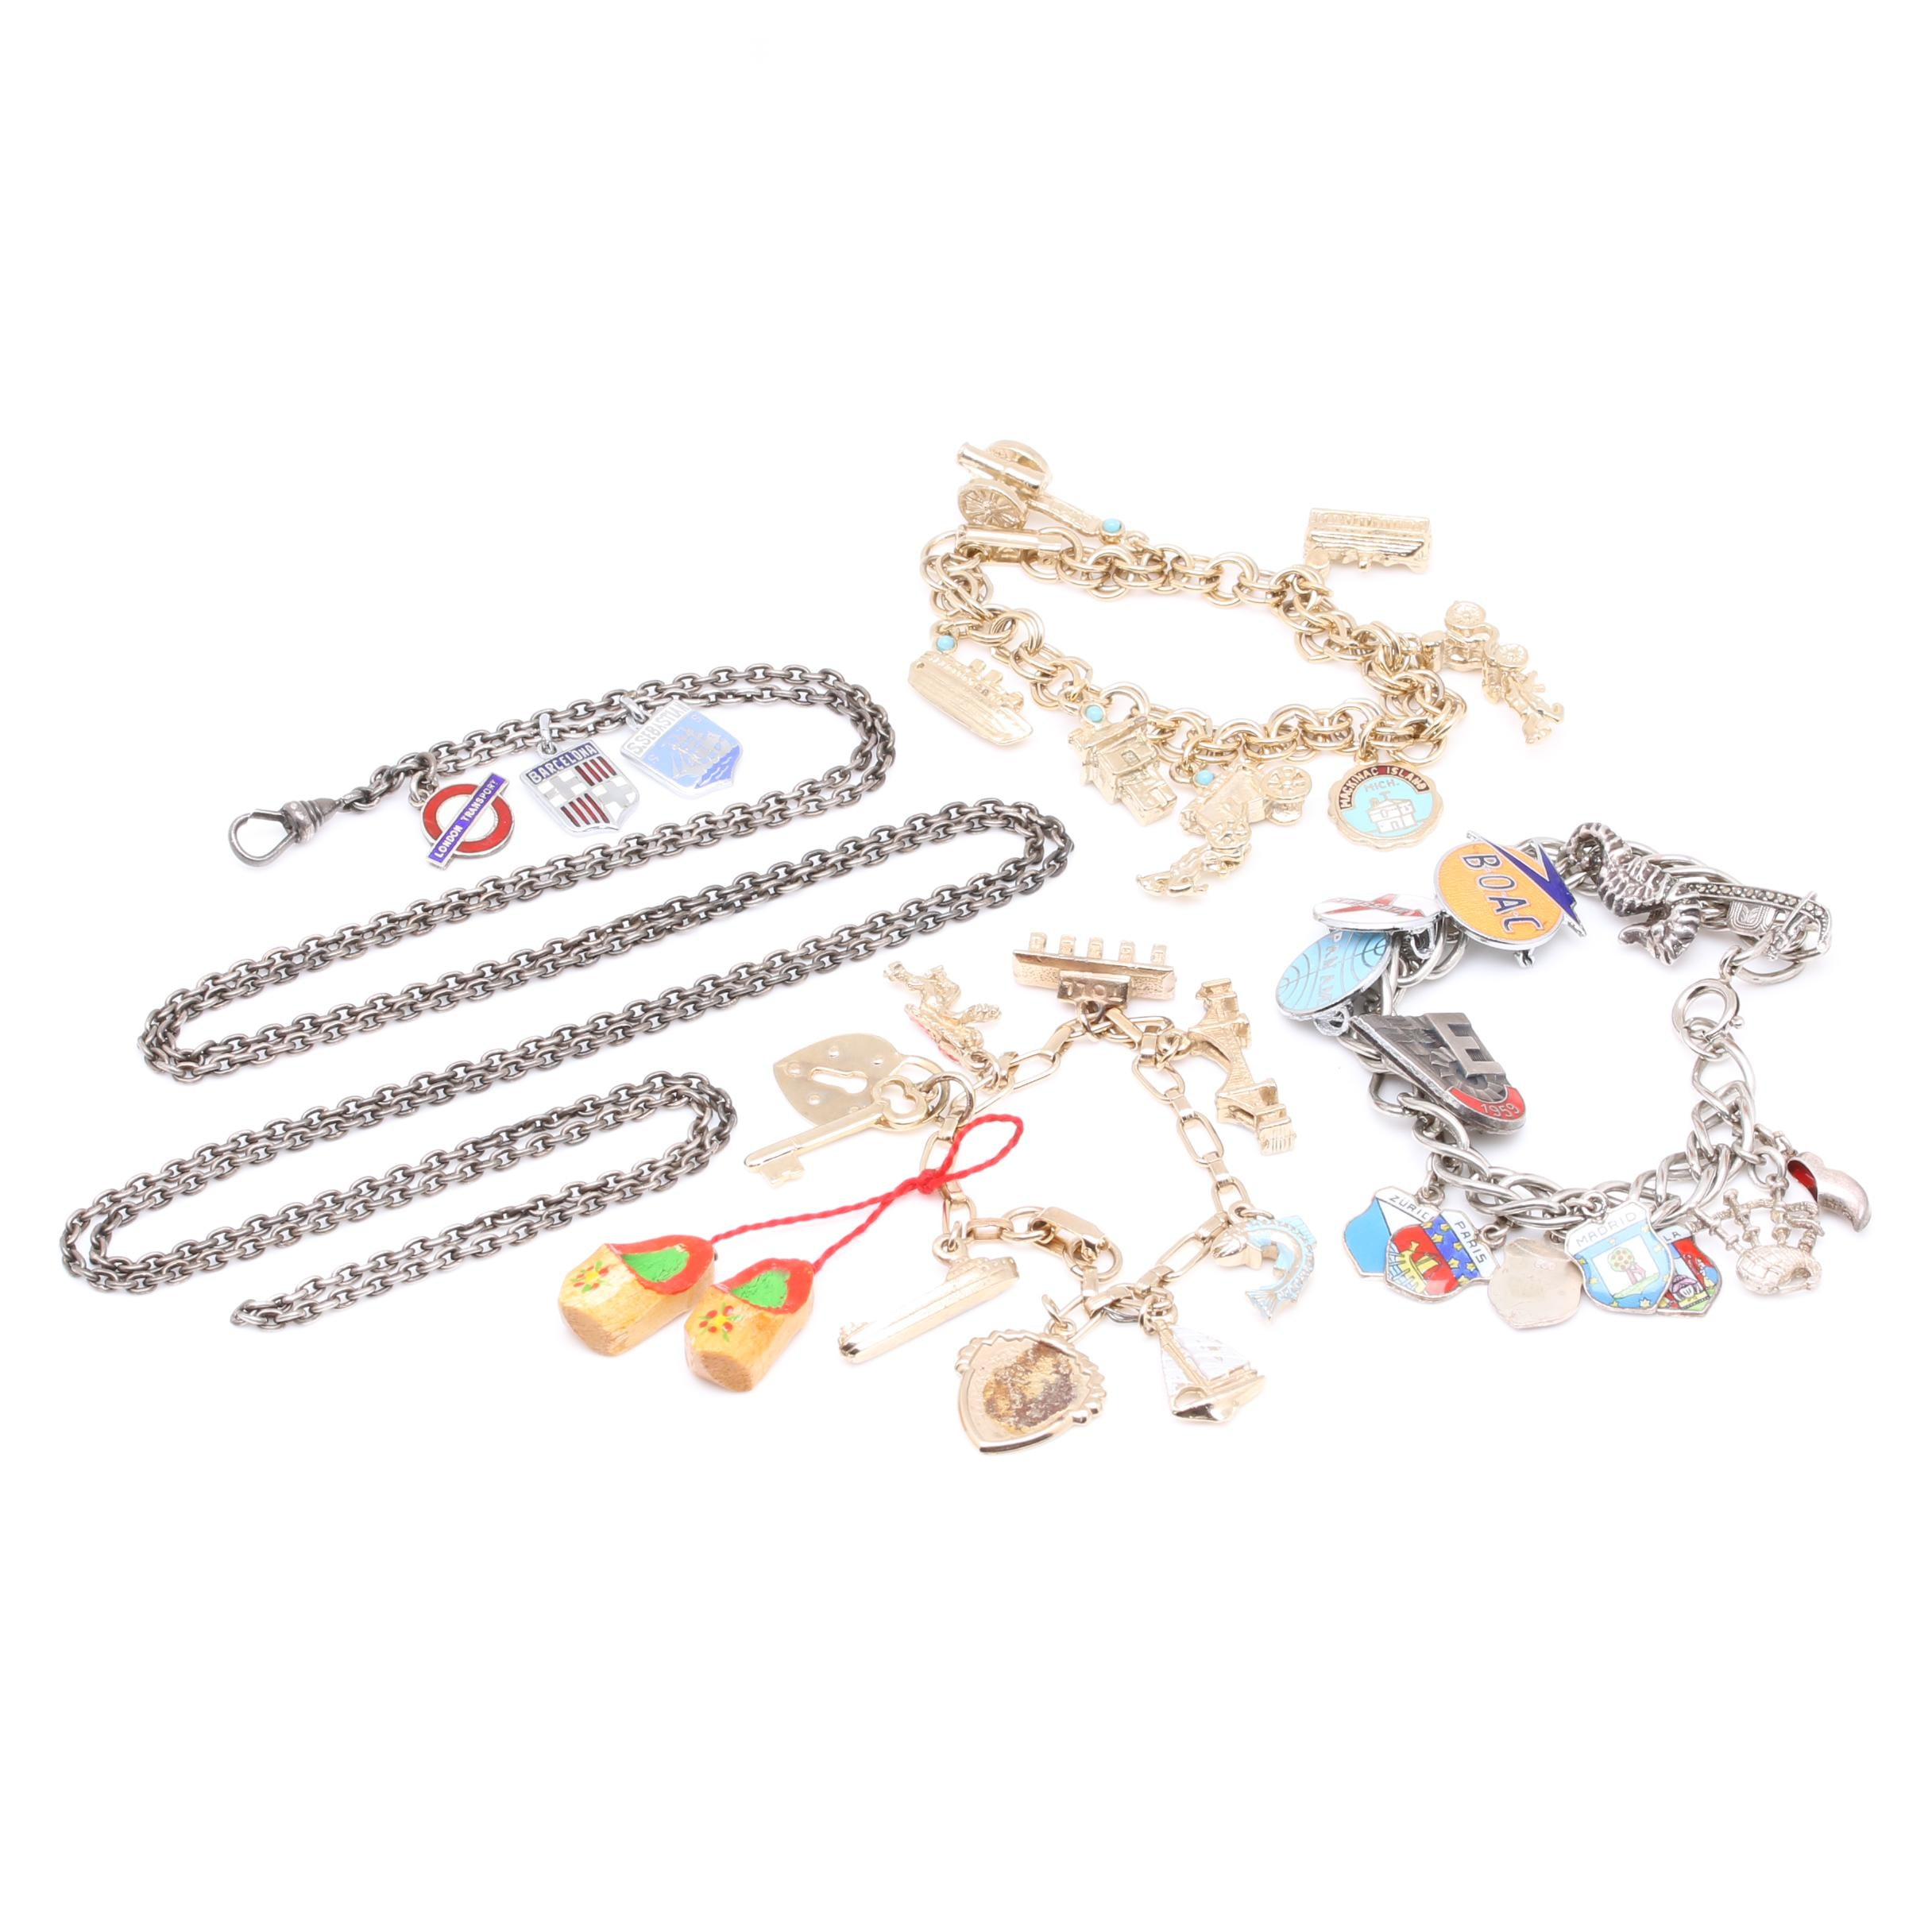 Charm Bracelets and Watch Chain Fob Including Sterling Silver and Wood